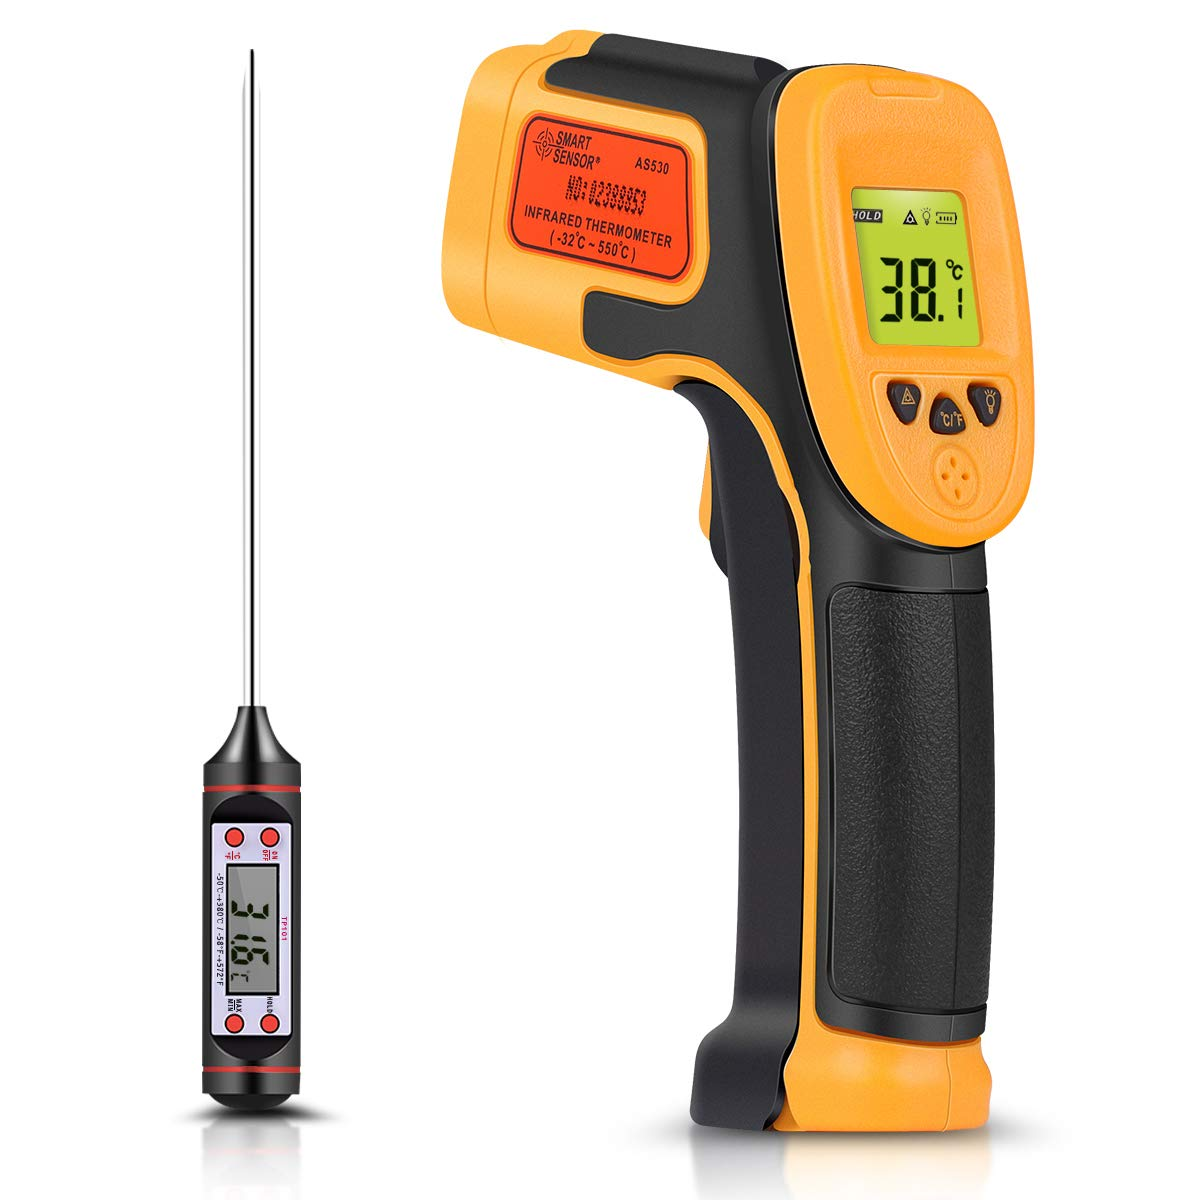 Infrared Thermometer, Digital IR Laser Thermometer Temperature Gun -26°F~1022°F (-32°C~550°C) Temperature Probe Cooking/Air/Refrigerator - Meat Thermometer Included by SOVARCATE